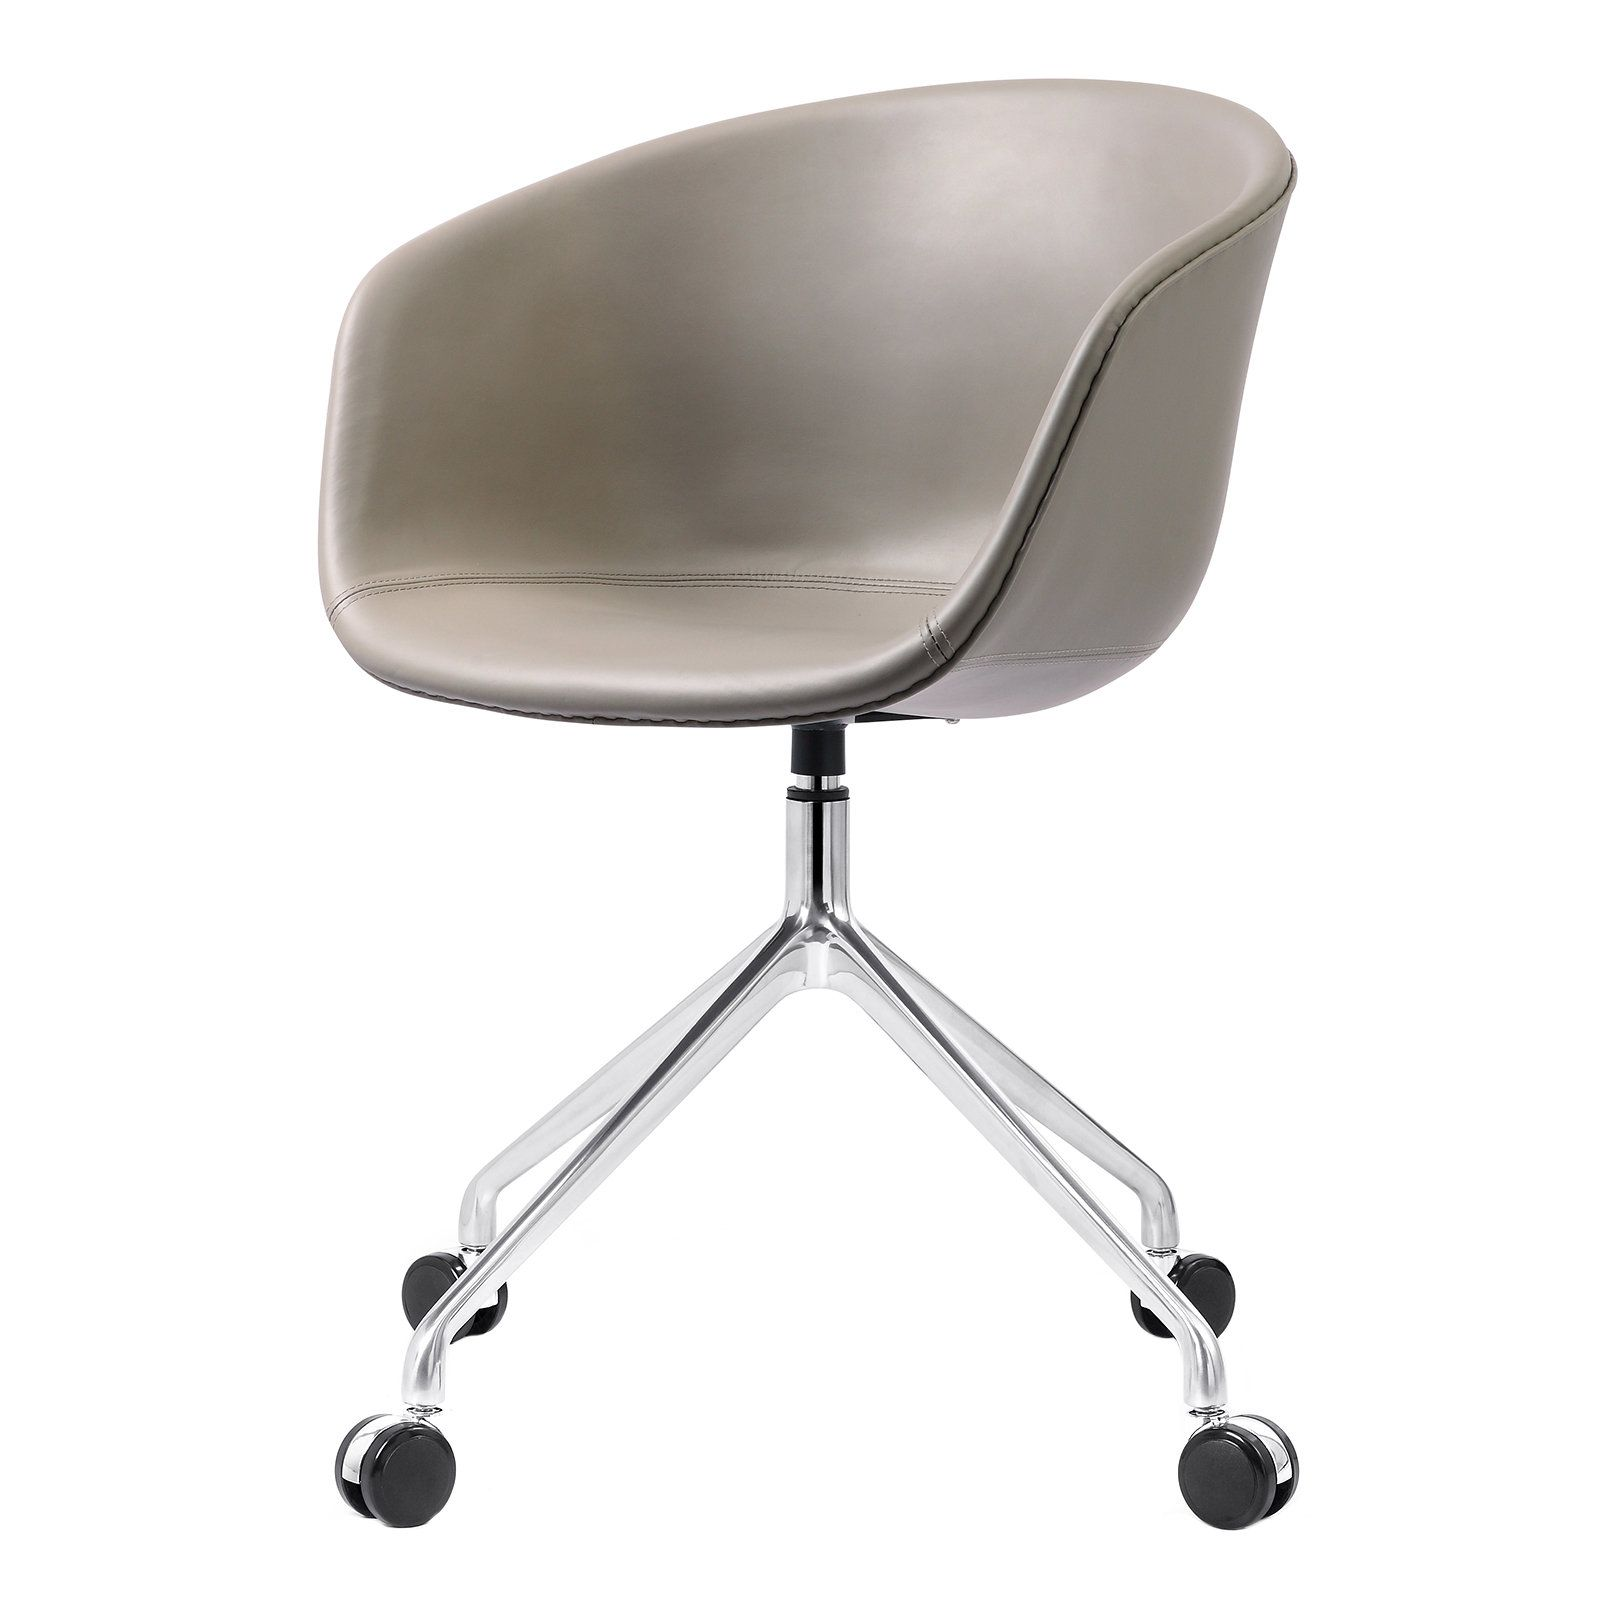 Pin By Pauline Haynes On Desk Chair In 2020 Office Chair Scandinavian Office Chairs Chair